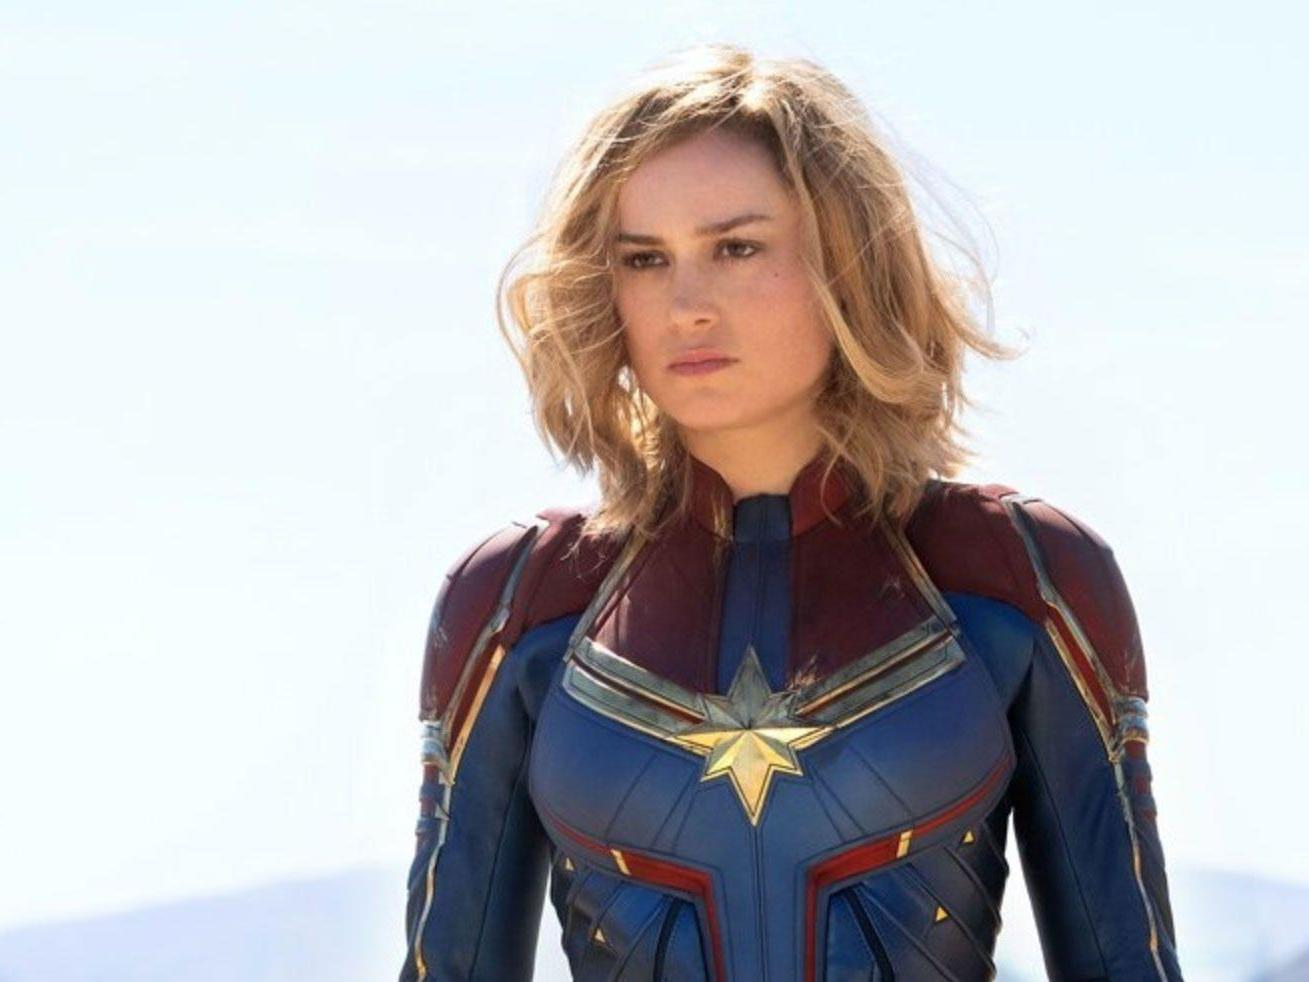 Captain Marvel Review Brie Larson Makes An Engaging And Witty Superhero In New Mcu Film The Independent The Independent Captain uk spandex & metallic superhero costume. captain marvel review brie larson